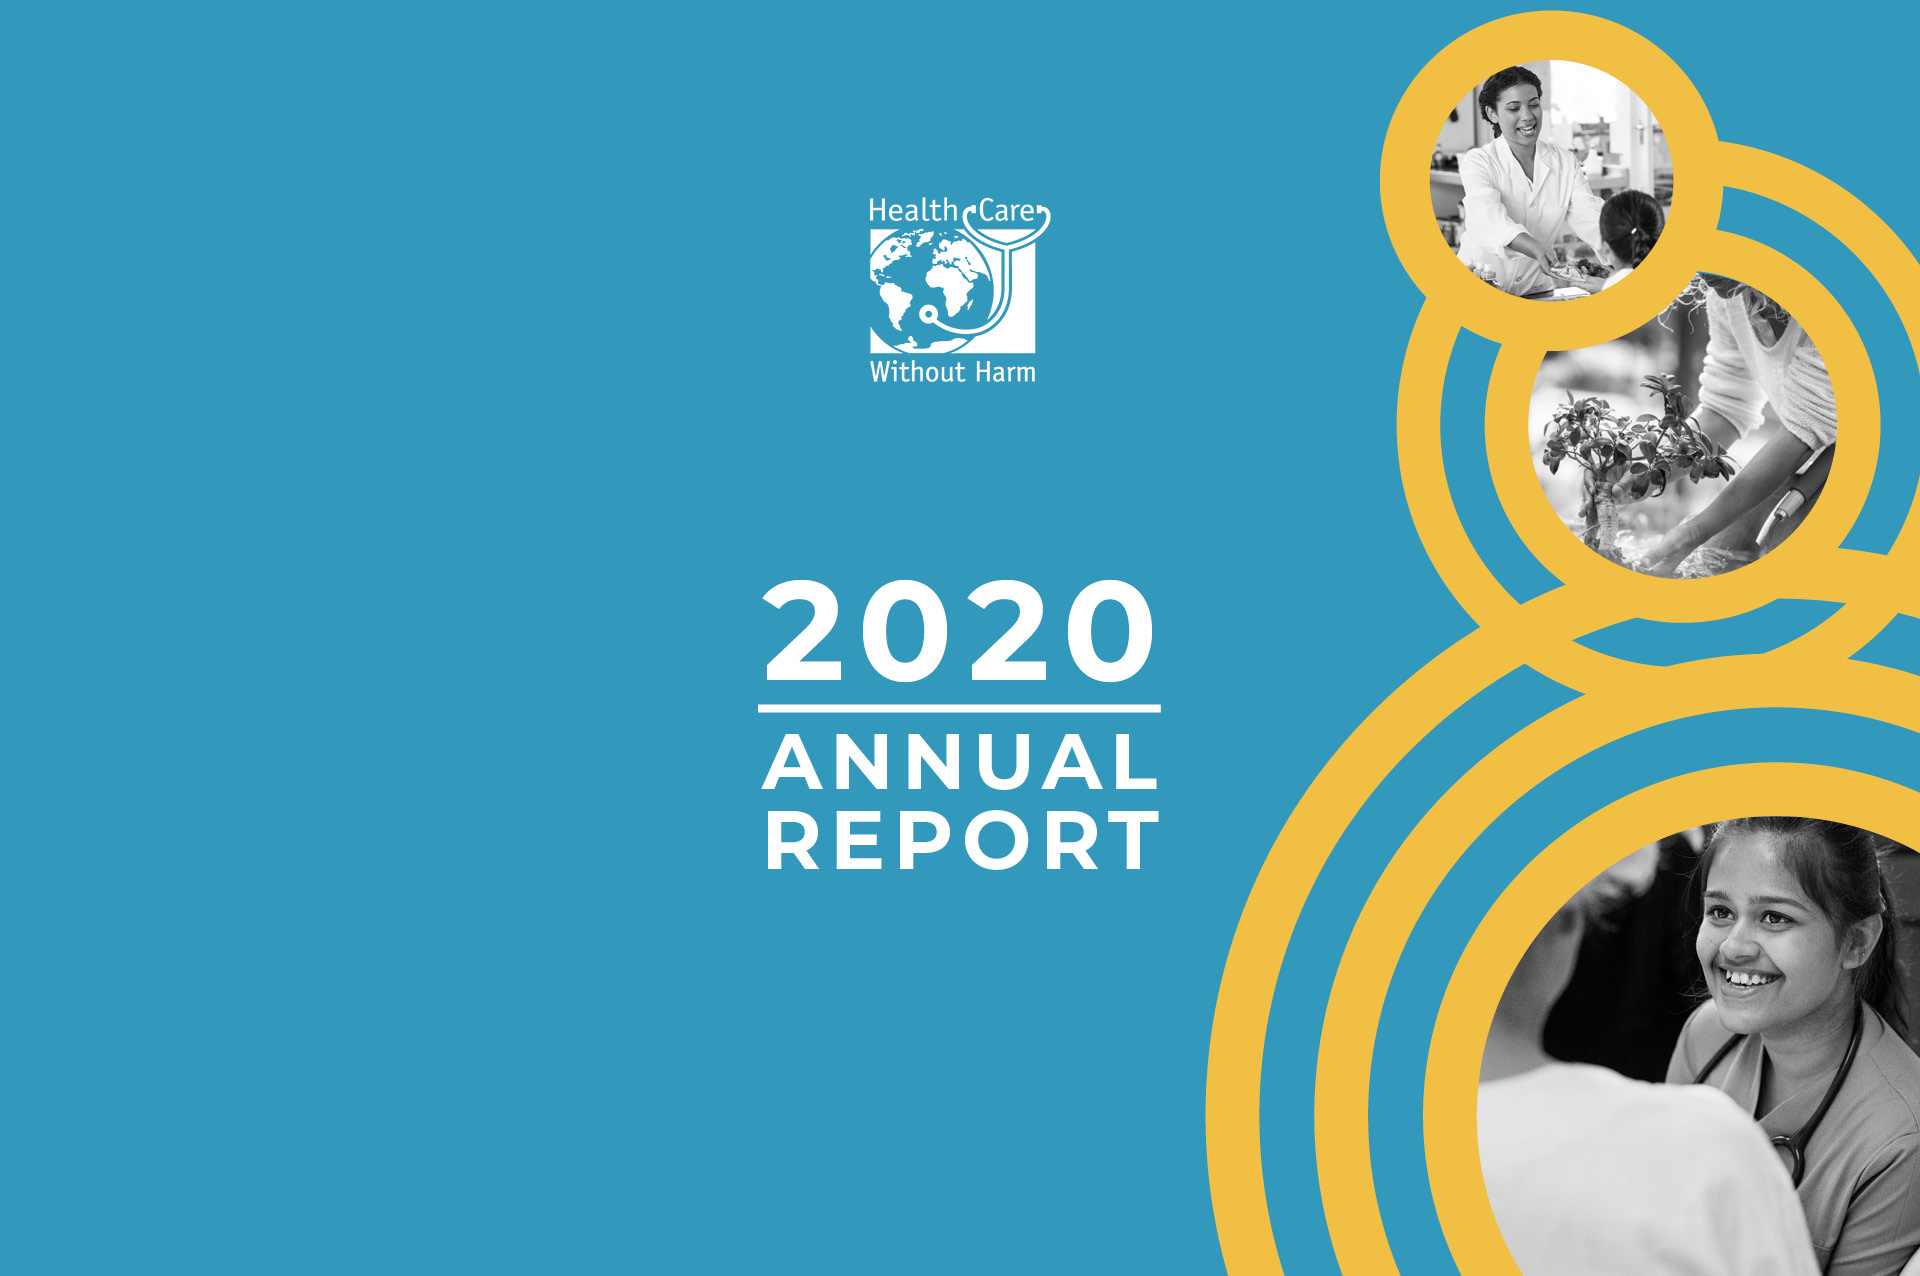 2020 Annual Report - HCWH Europe